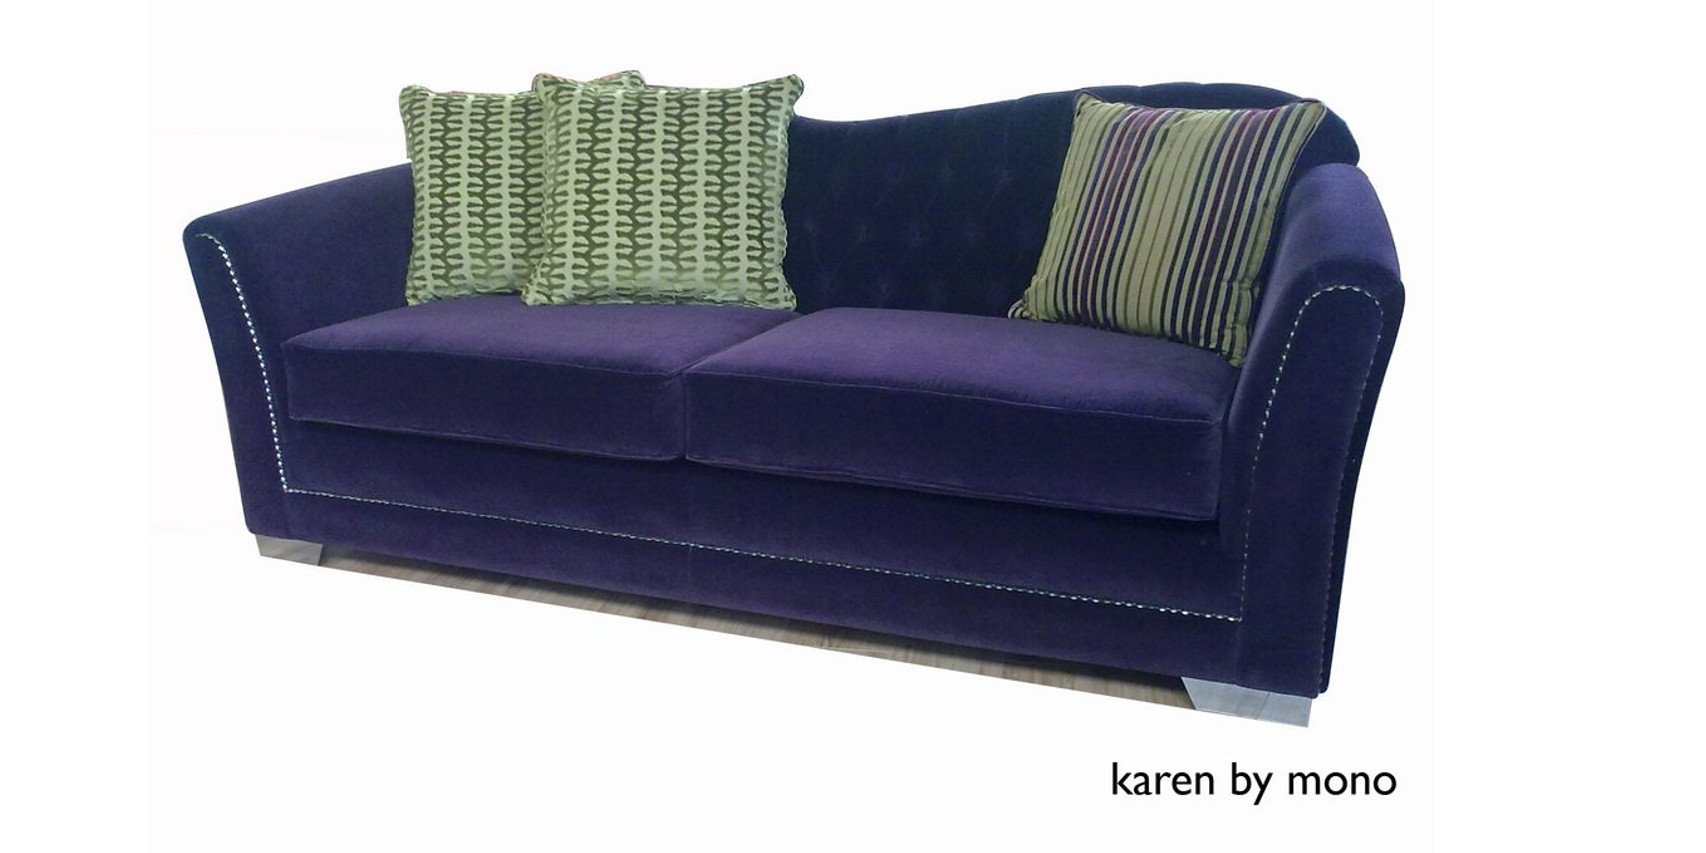 Karen Sofa - Mono Furniture within Karen Sofa Chairs